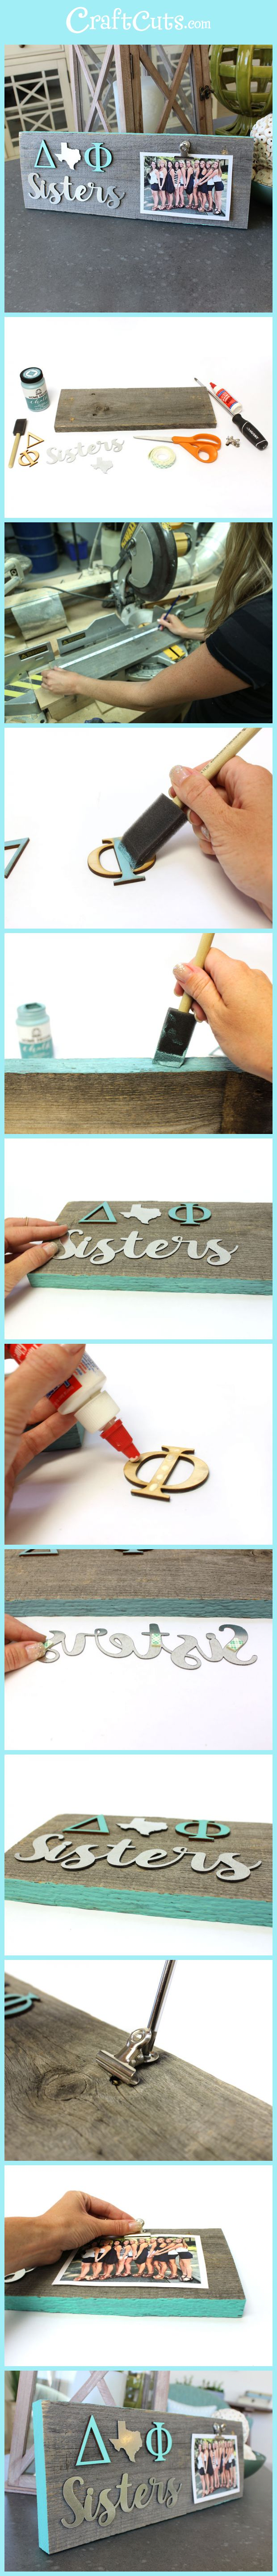 Greek Reclaimed Wood Frame | Sorority Sister Fame | Easy Reclaimed Wood Frame DIY | CraftCuts.com